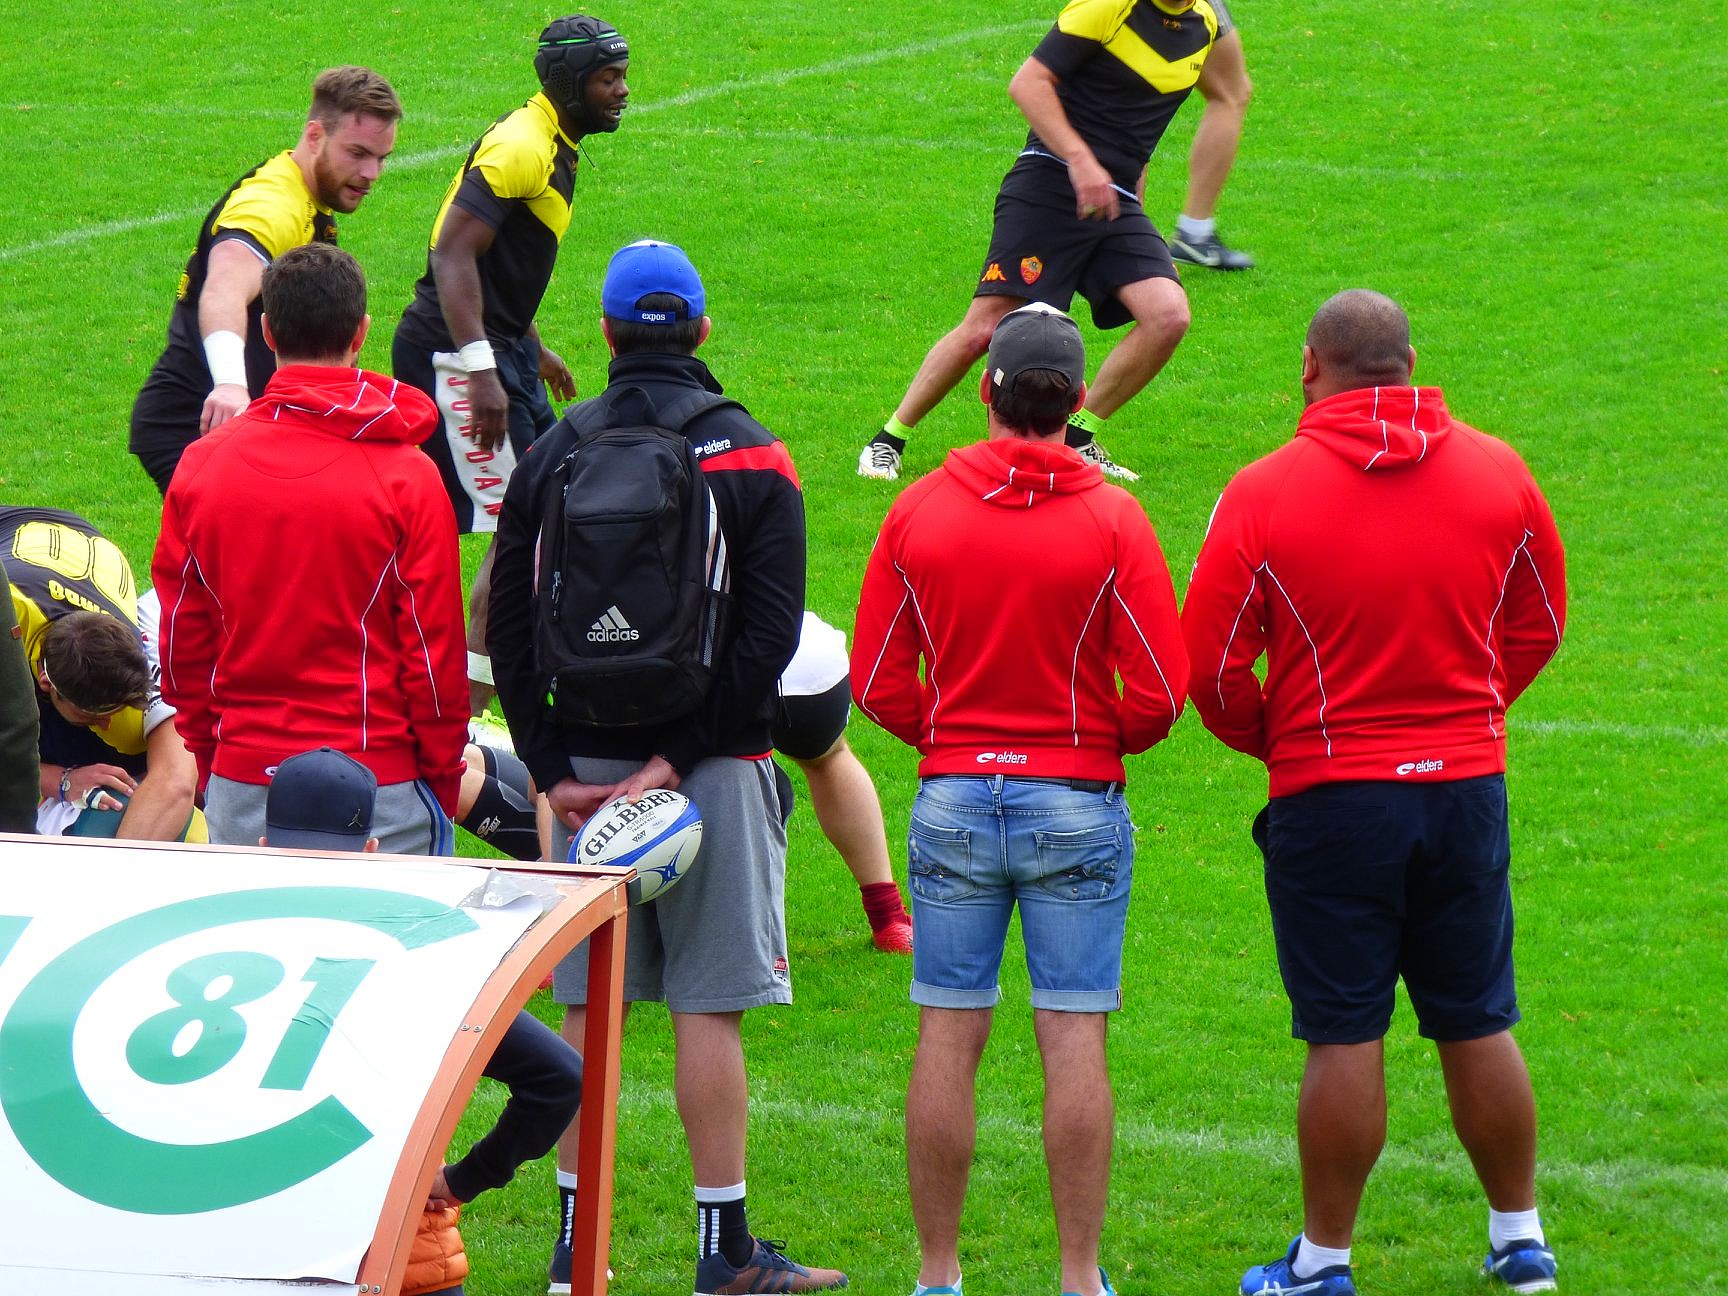 http://scg-rugby.com/wp-content/uploads/2018/05/pavois-A.jpg